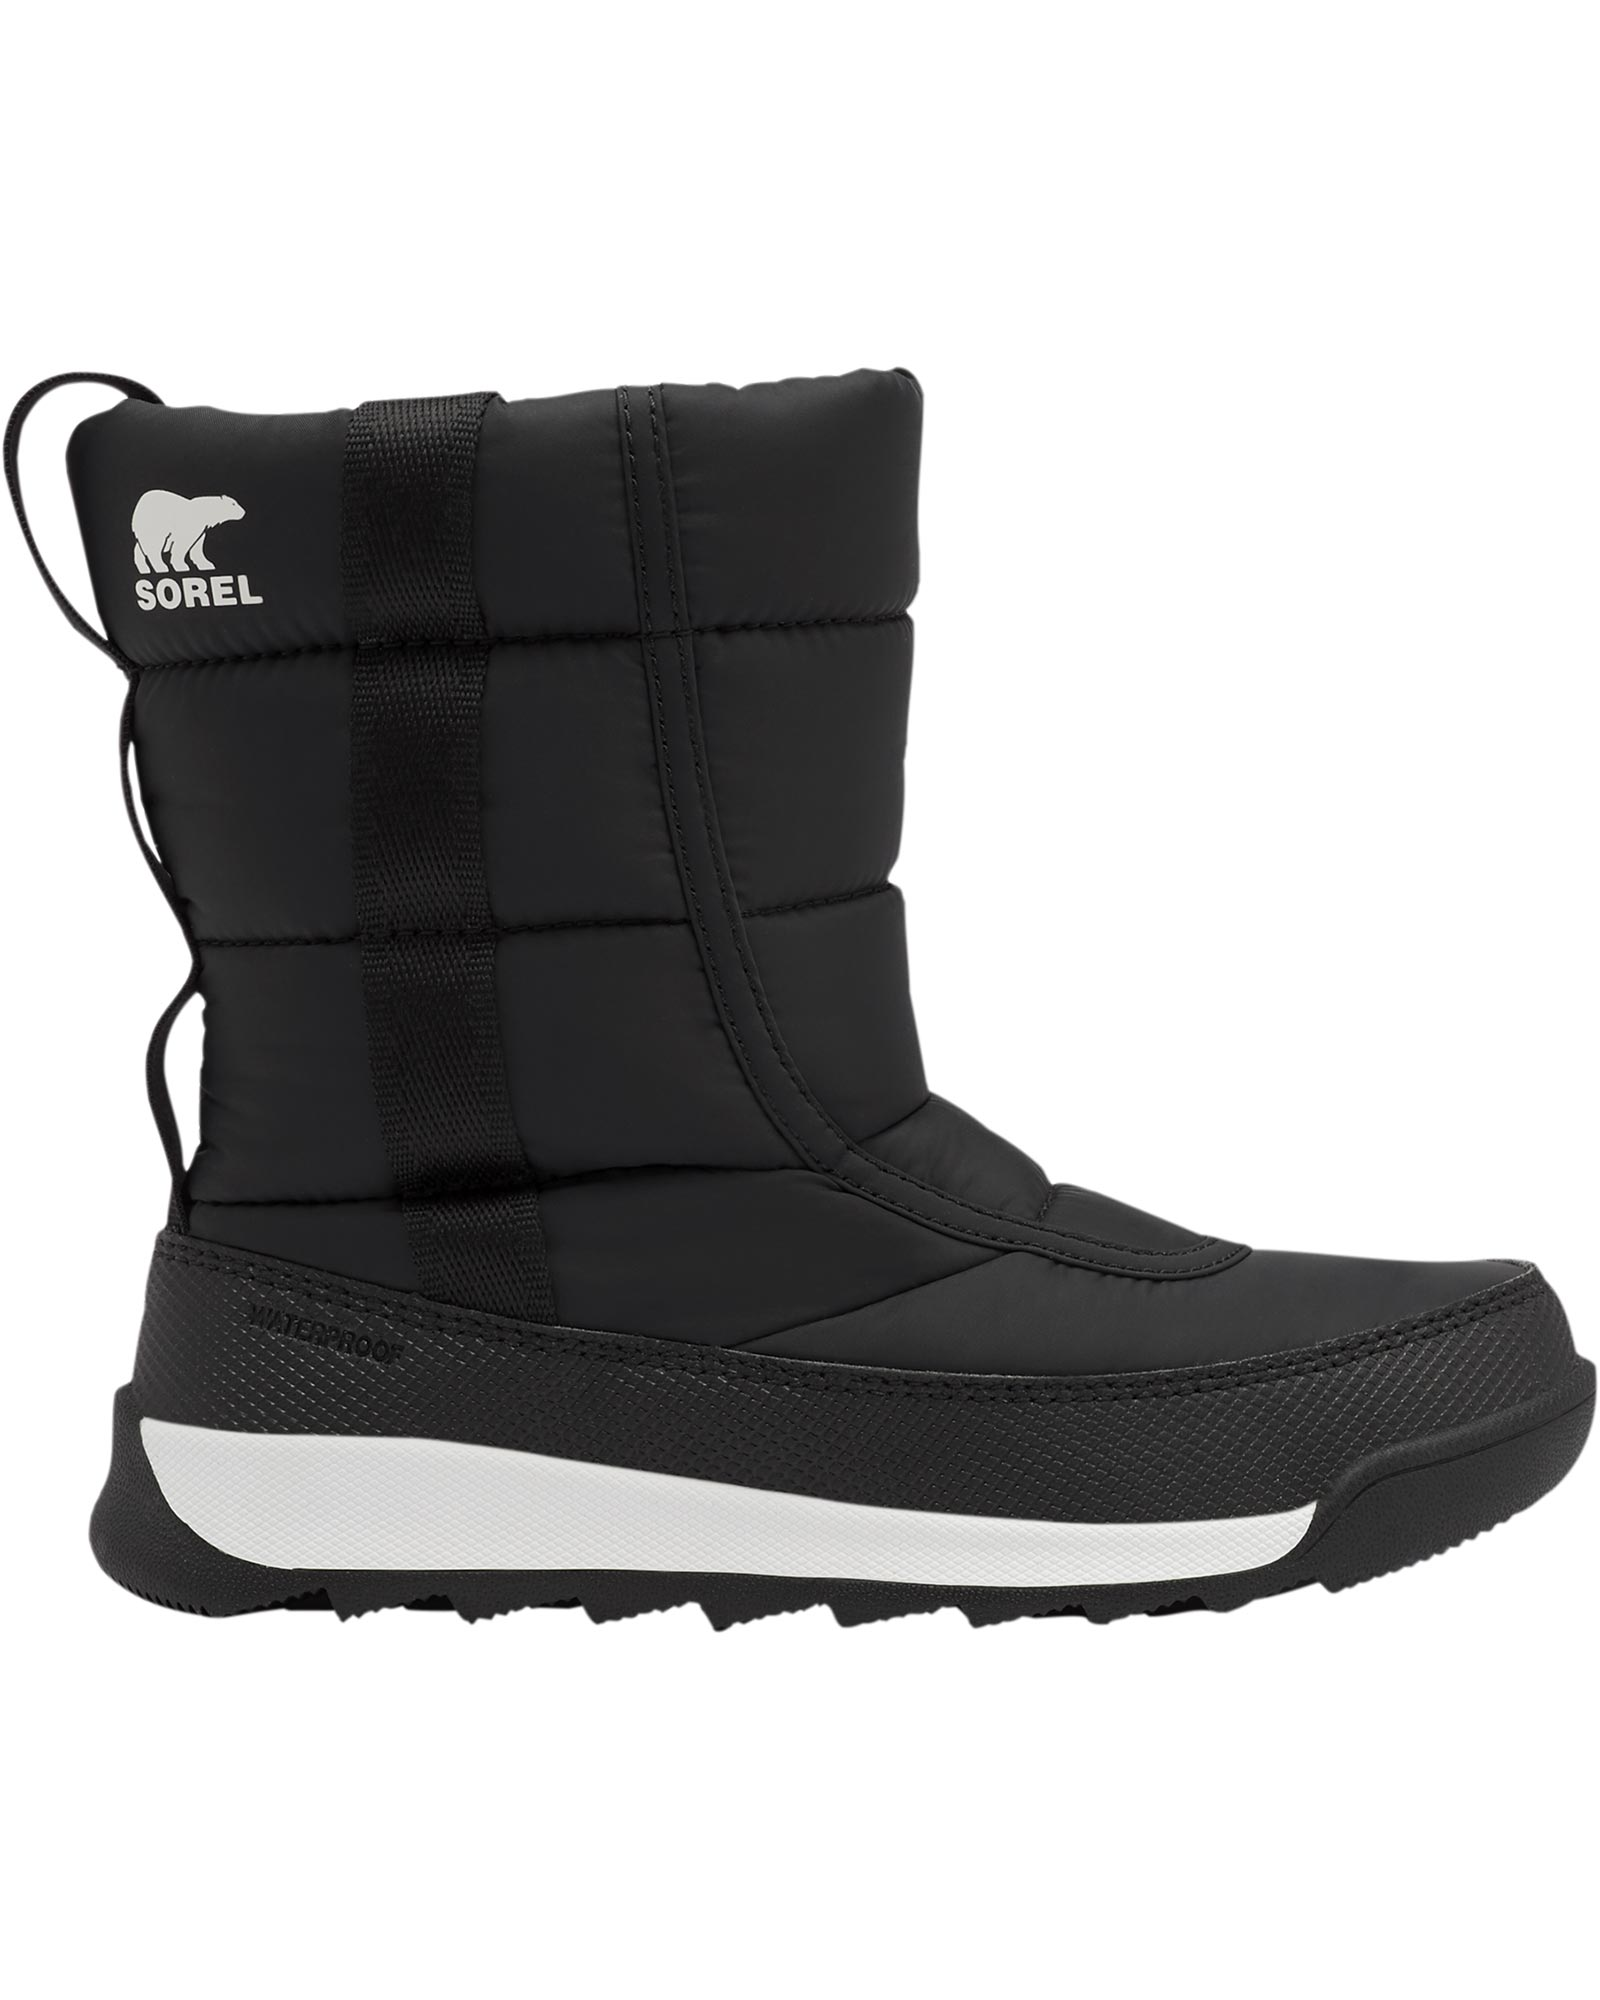 Sorel Youth Whitney II Puffy Mid Snow Boots 0